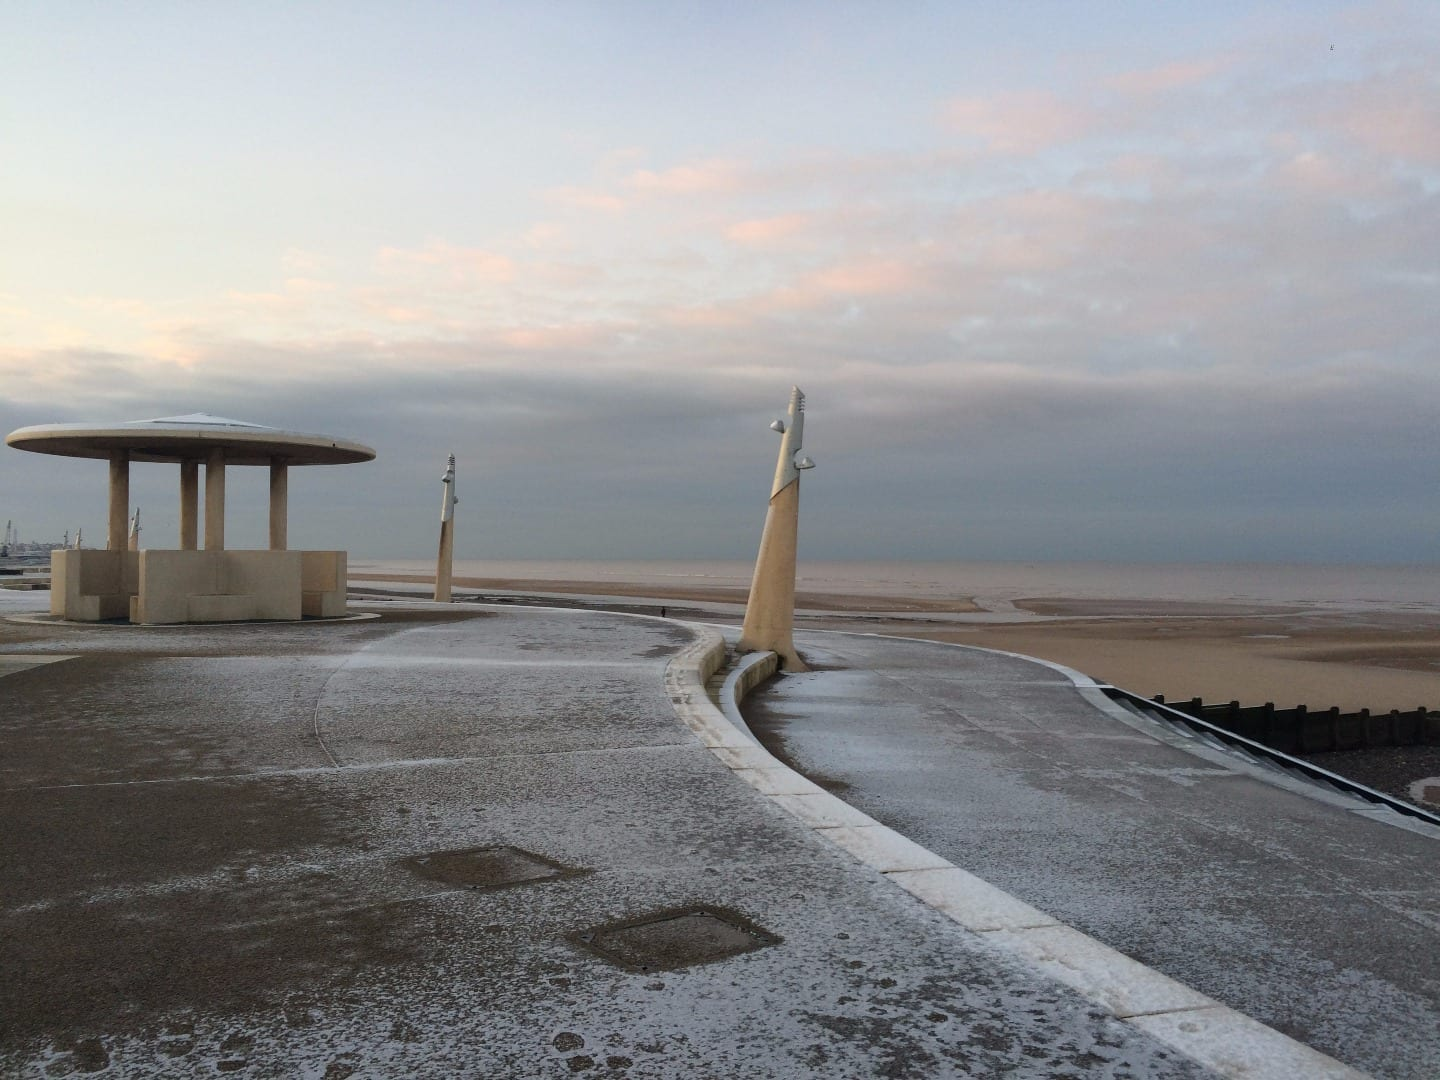 Cold and snowy Cleveleys promenade